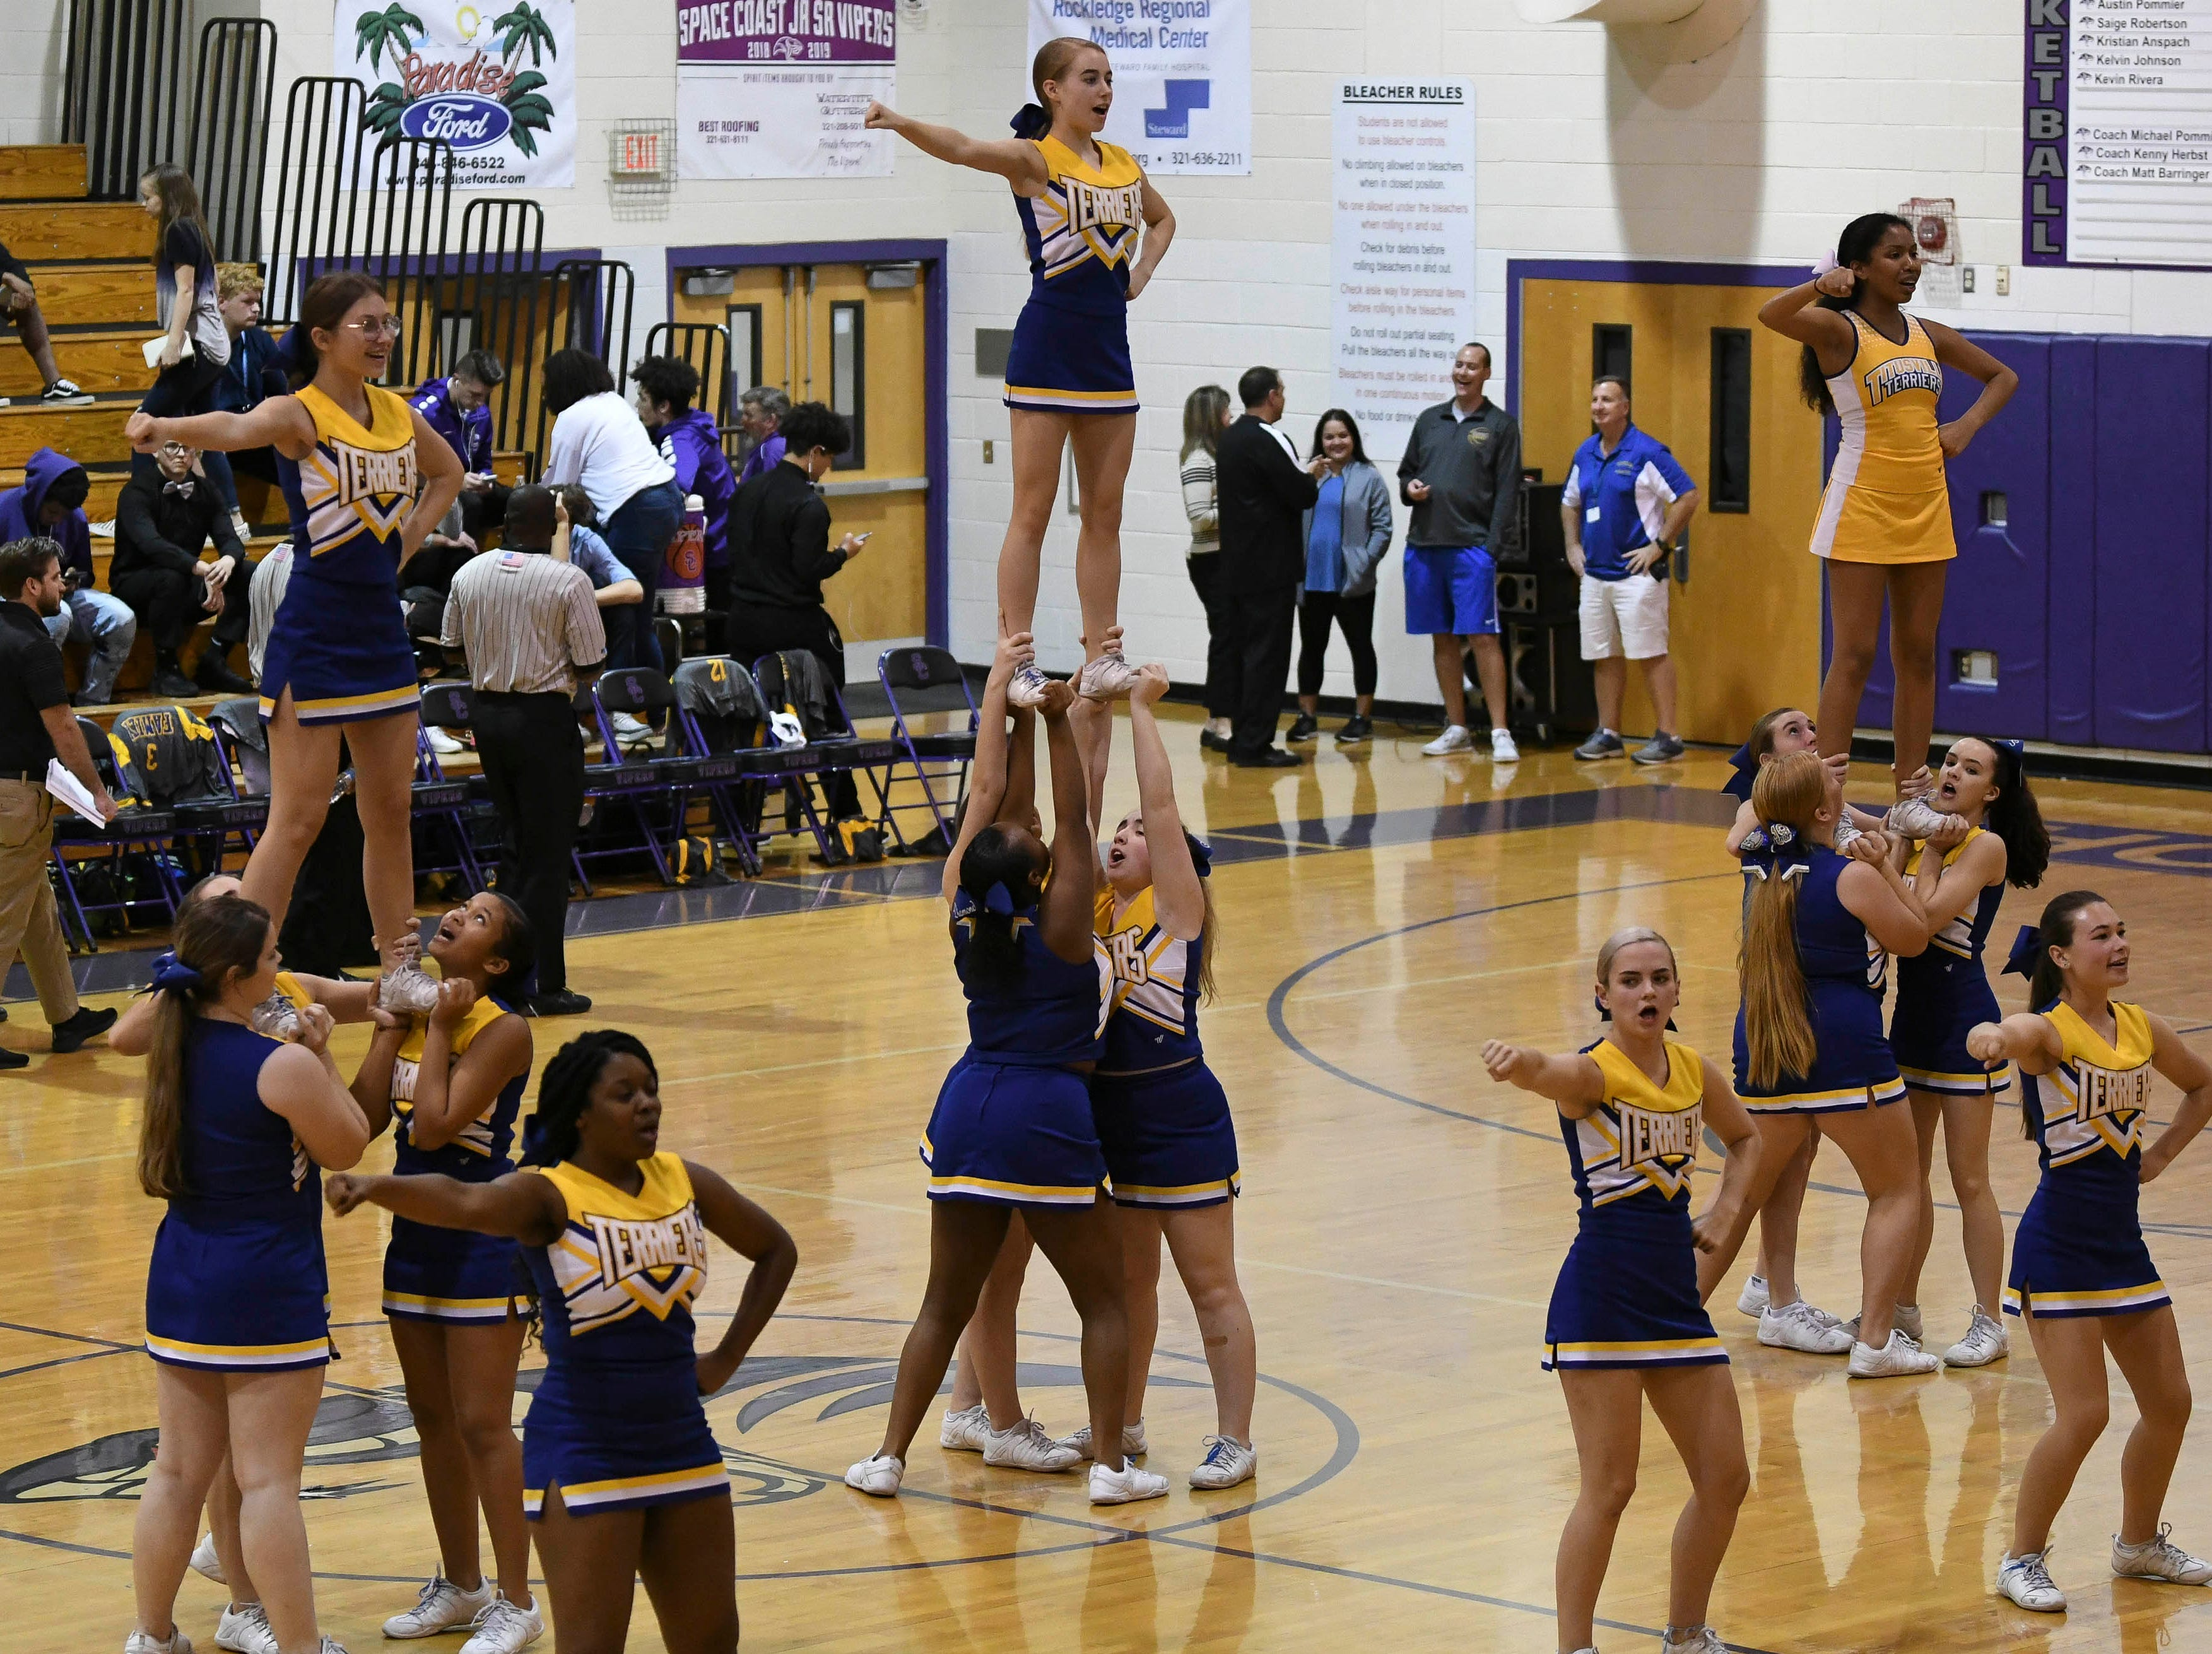 Titusville cheerleaders perform during Tuesday's District 14-6A boys basketball tournament at Space Coast Jr/Sr High.